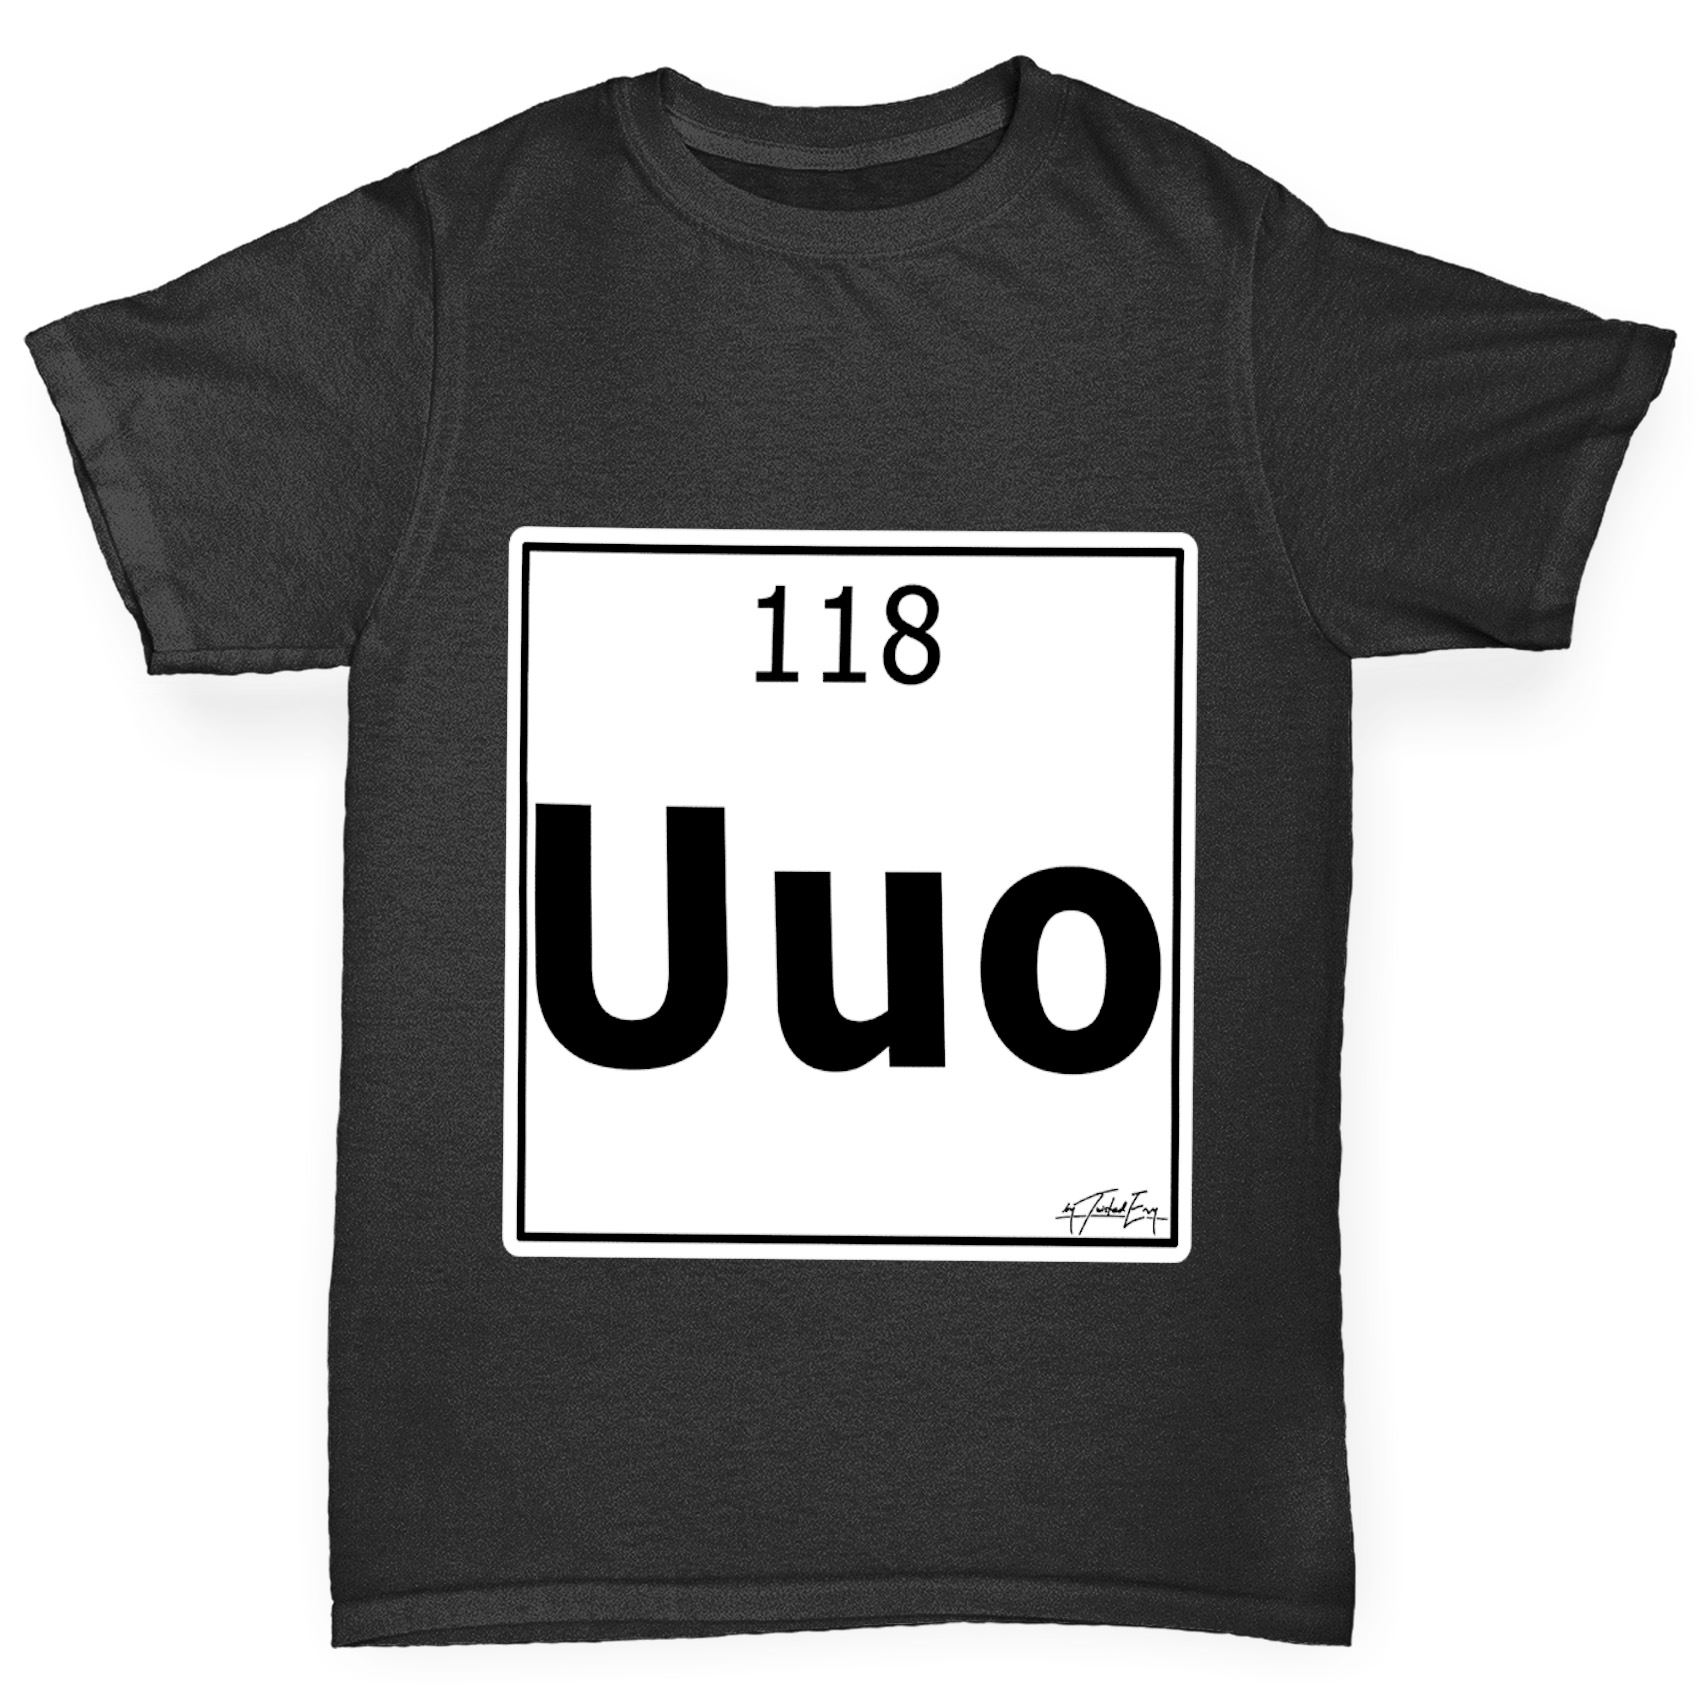 Twisted envy boys periodic table element uuo ununoctium t shirt ebay twisted envy boy 039 s periodic table element urtaz Images